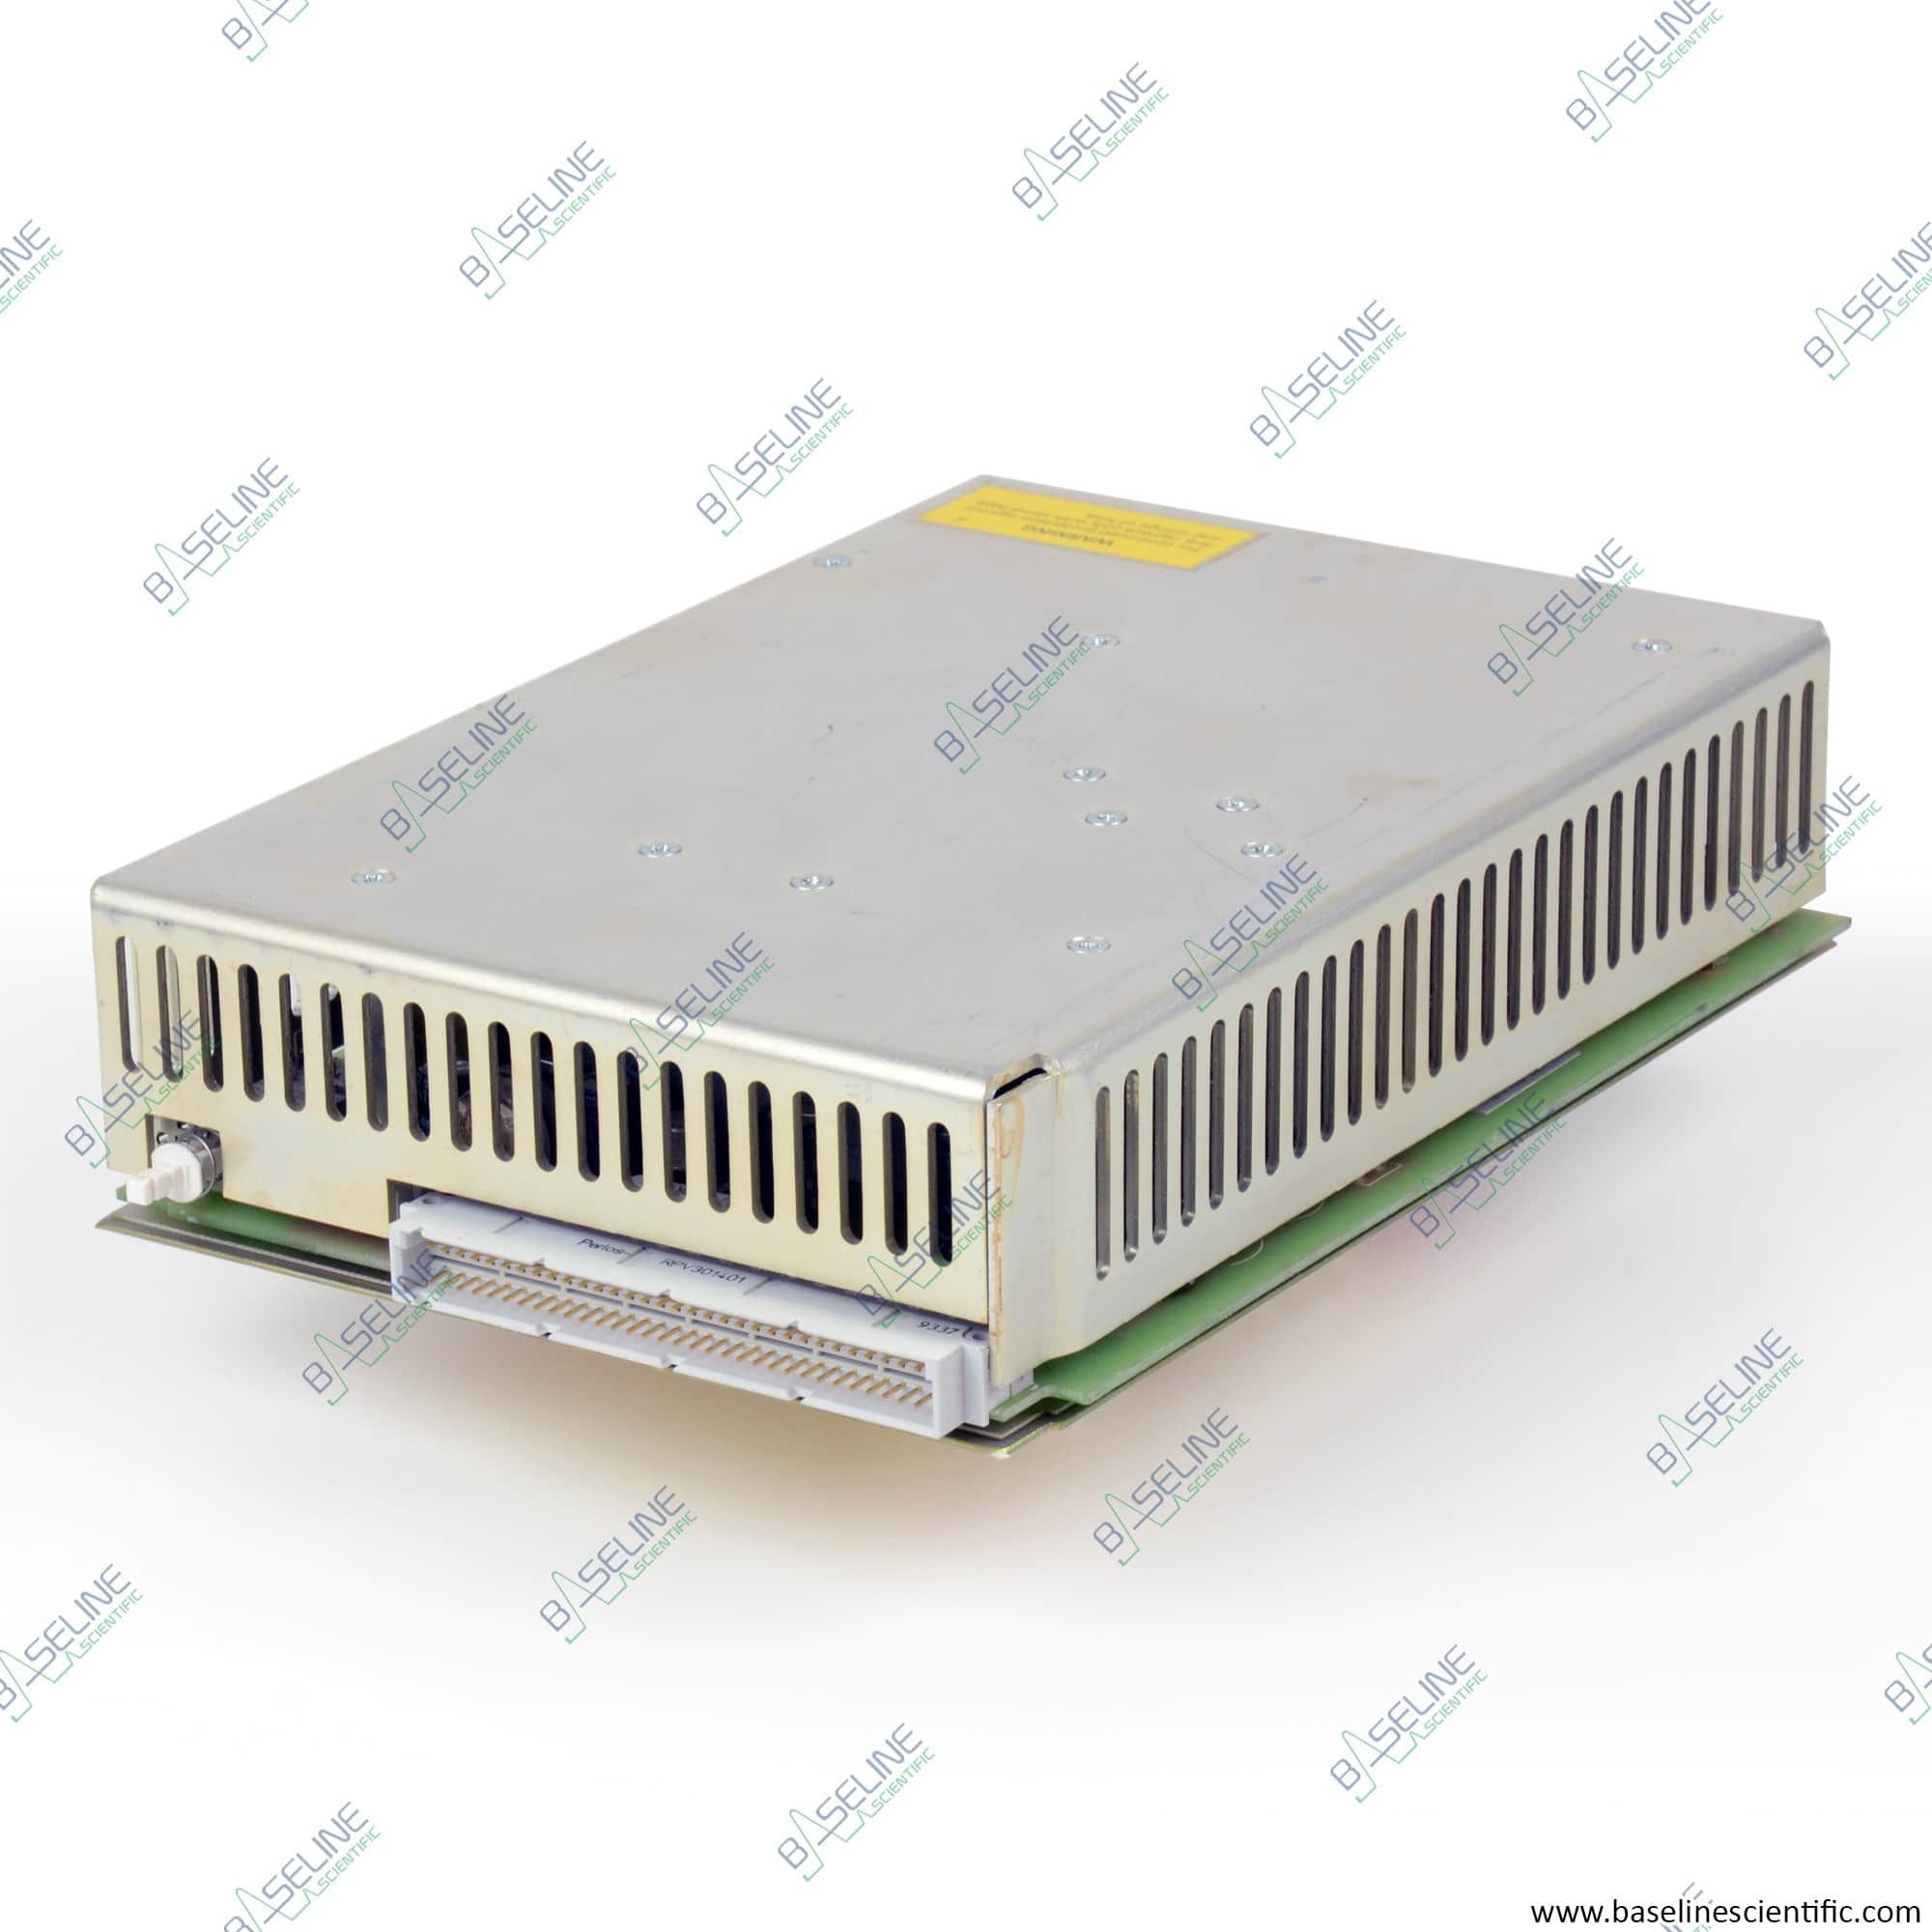 Refurbished HP 5061-3374 Power Supply for 1050 HPLC Pump and Autosampler with ONE YEAR WARRANTY